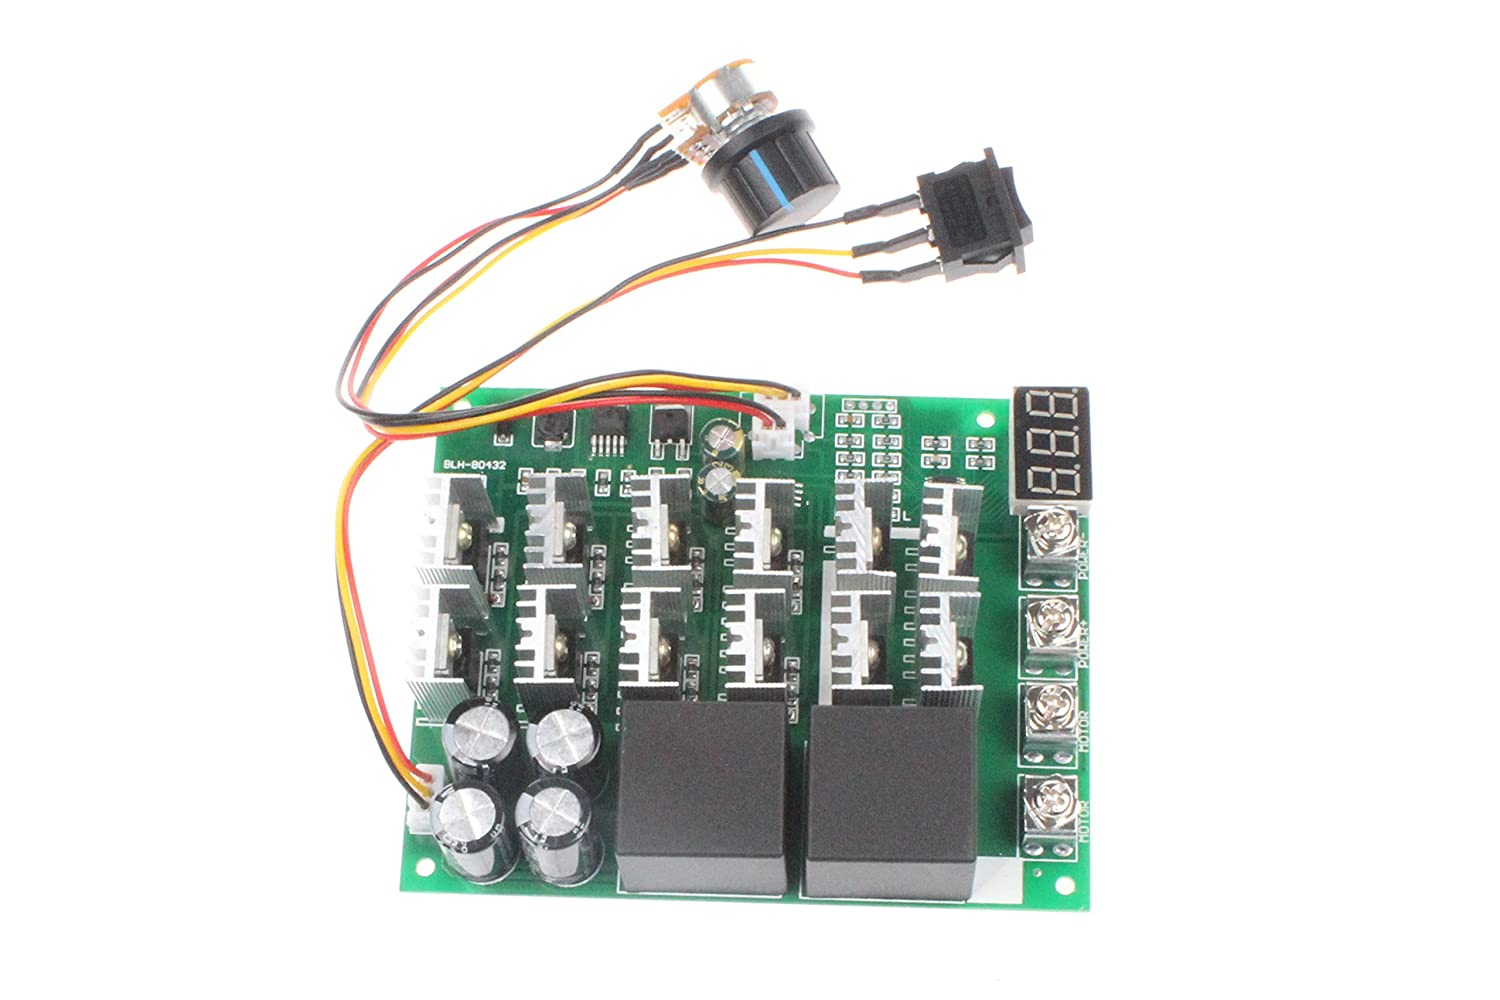 Noyito Pwm Motor Speed Controller 60a Dc 10v 55v 12v 24v Control Circuits Gt Separately Excited Reversing Circuit 36v 48v Digital Display 100a Max Brush Third Gear Forward Reverse